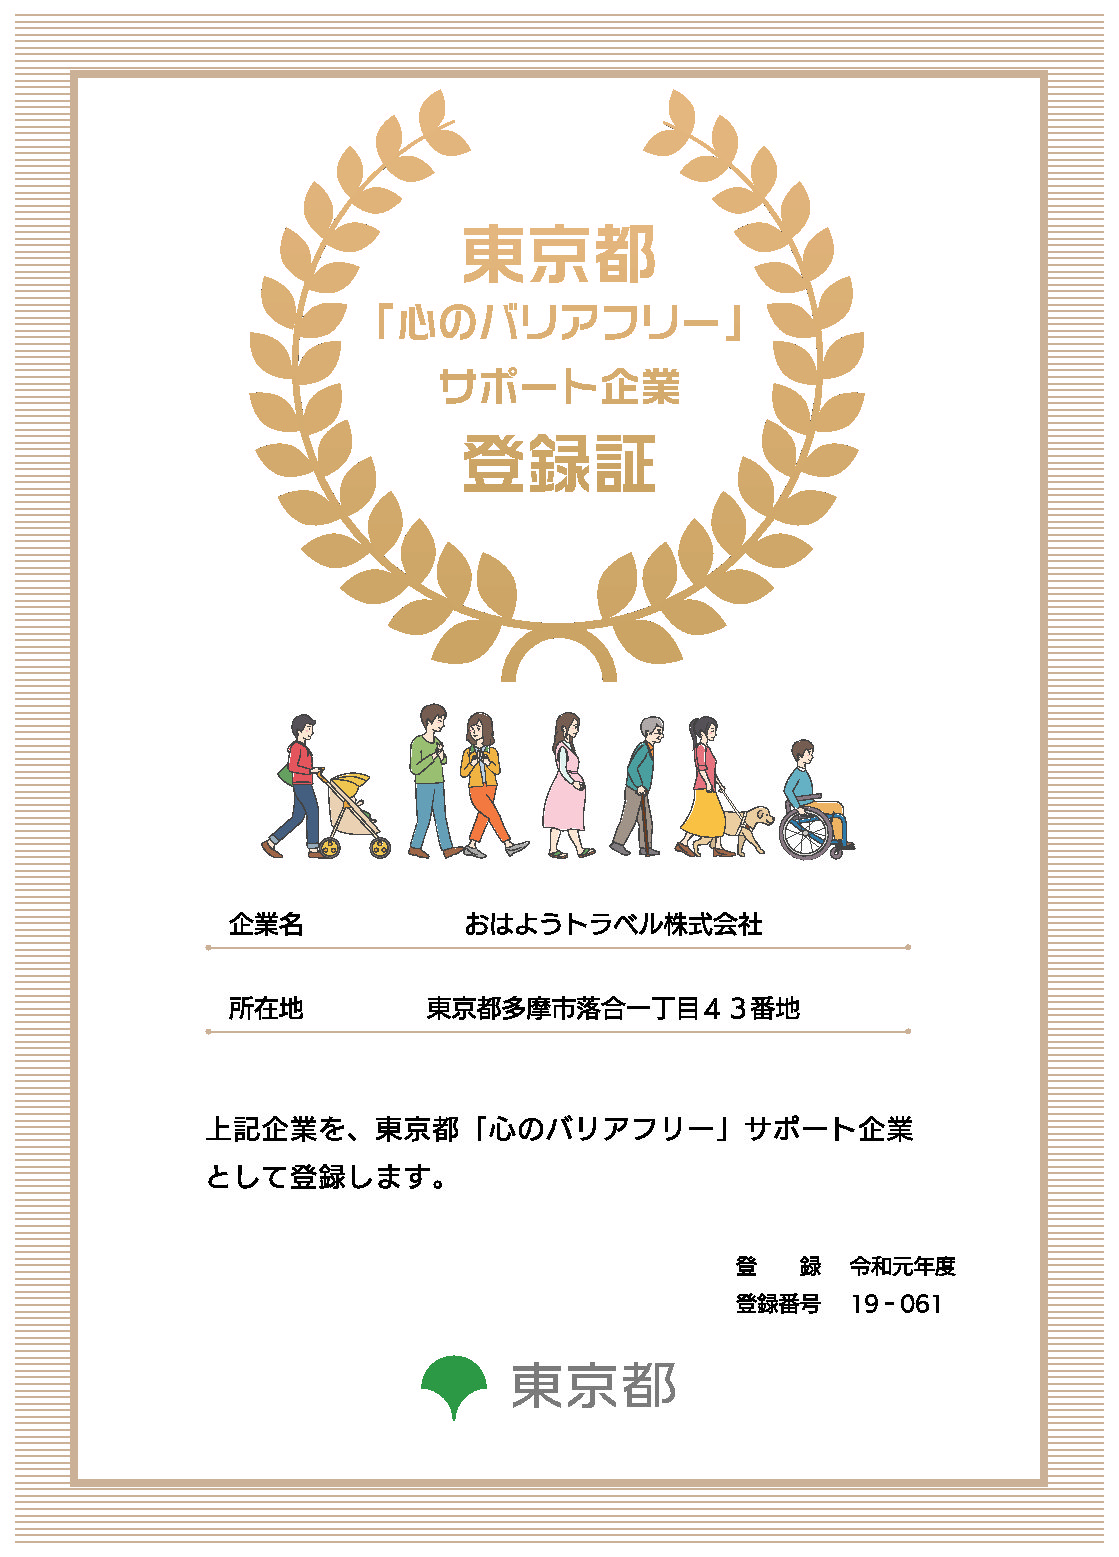 Ohayo Travel Registered as Accessibility/Diversity Supporter Organization by Tokyo Metropolitan Goverment